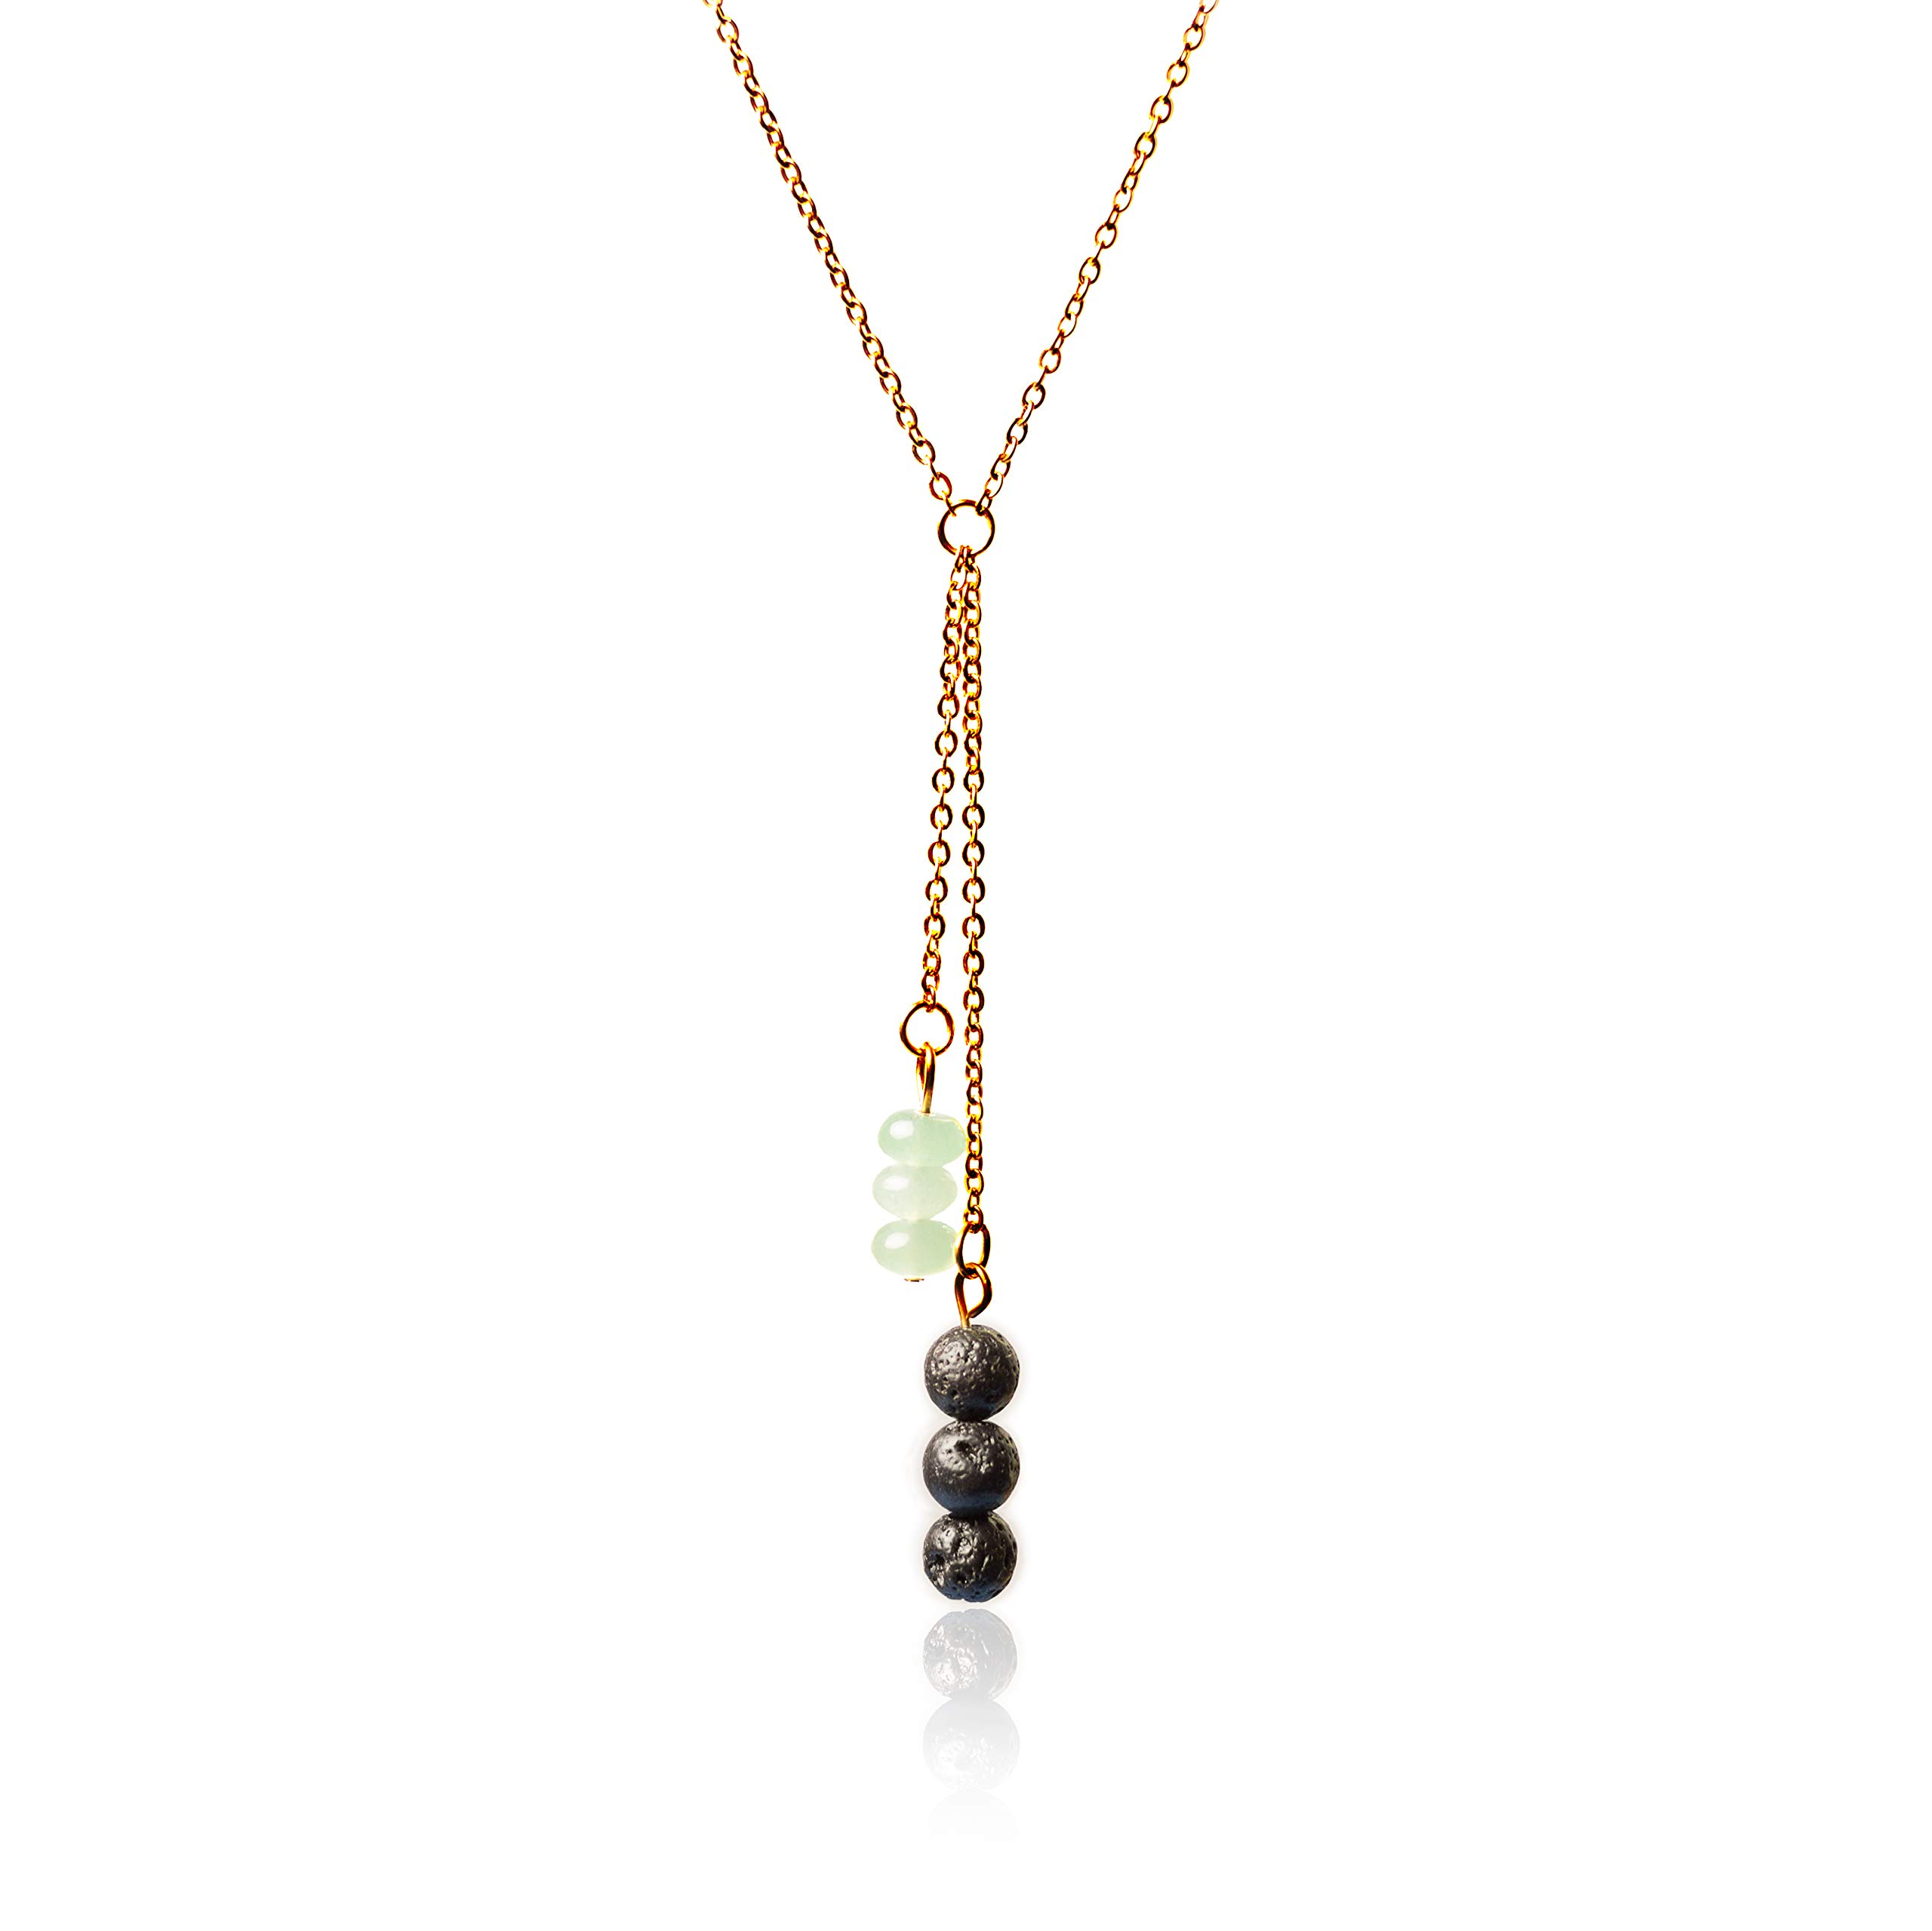 """Lava Stone and Aventurine Essential Oil Diffuser Necklace with Stainless Steel Chain, 19+2"""" Extender"""